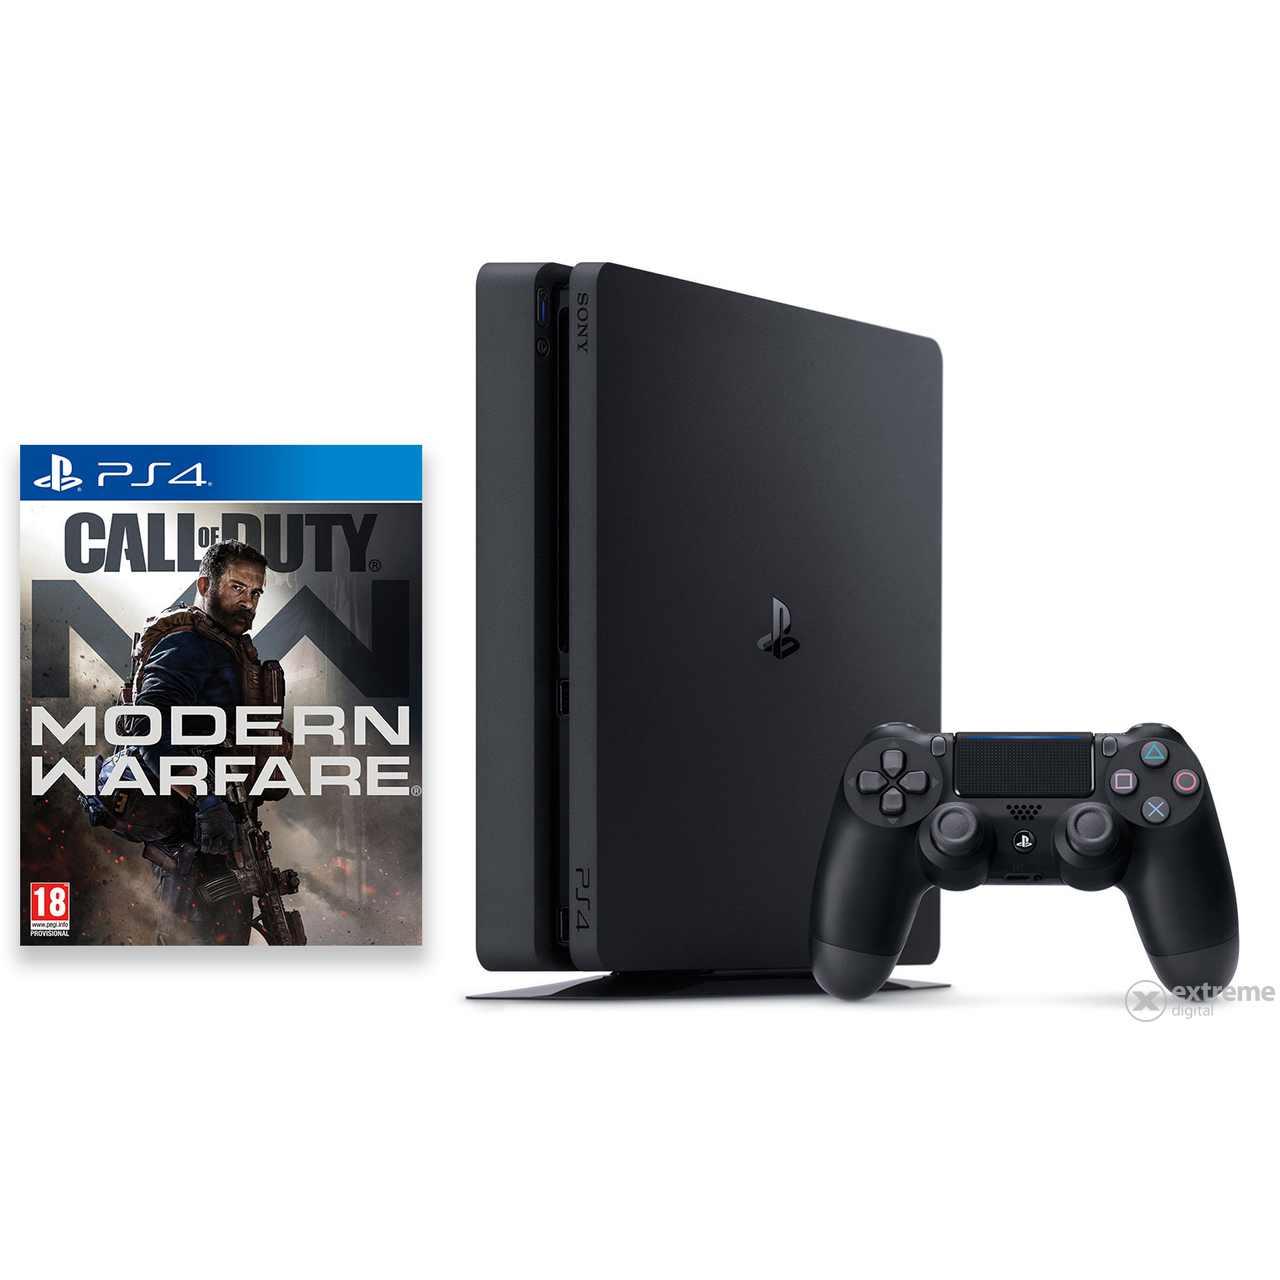 Igralna konzola PlayStation® PS4 Slim 1TB s programsko opremo za igre Call Of Duty Modern Warfare 4